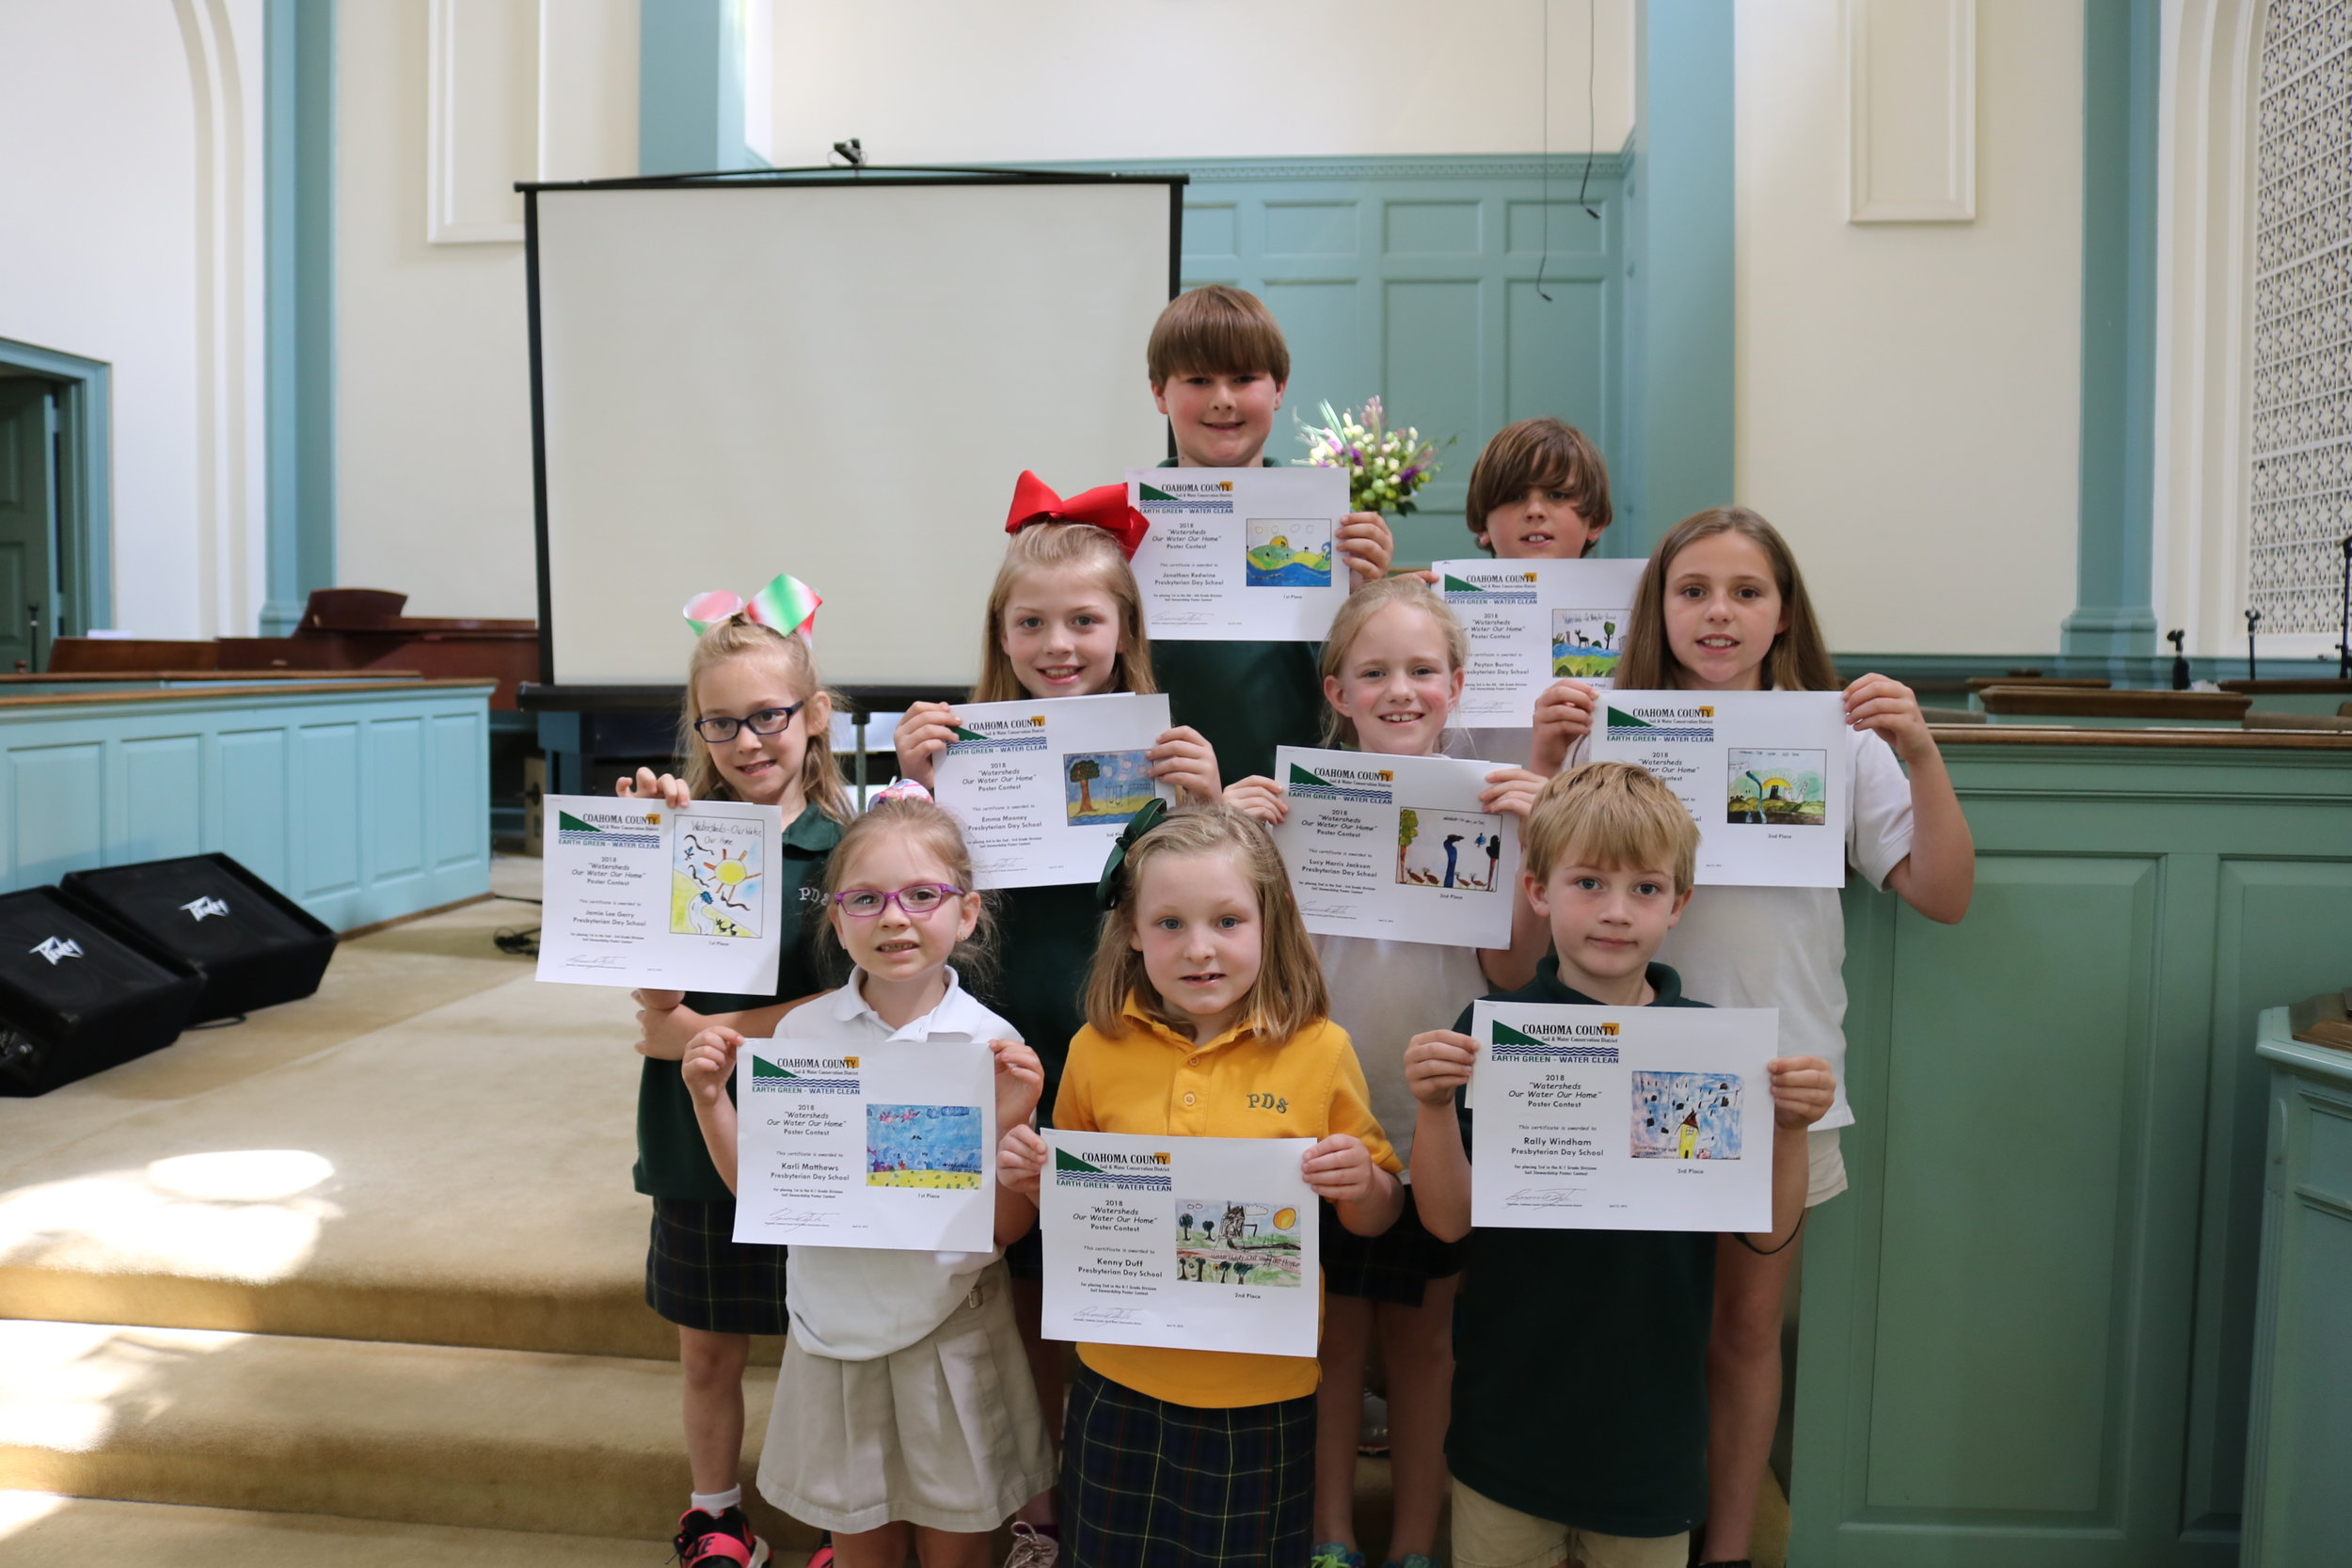 Coahoma County Soil & Water Conservation District poster contest winners